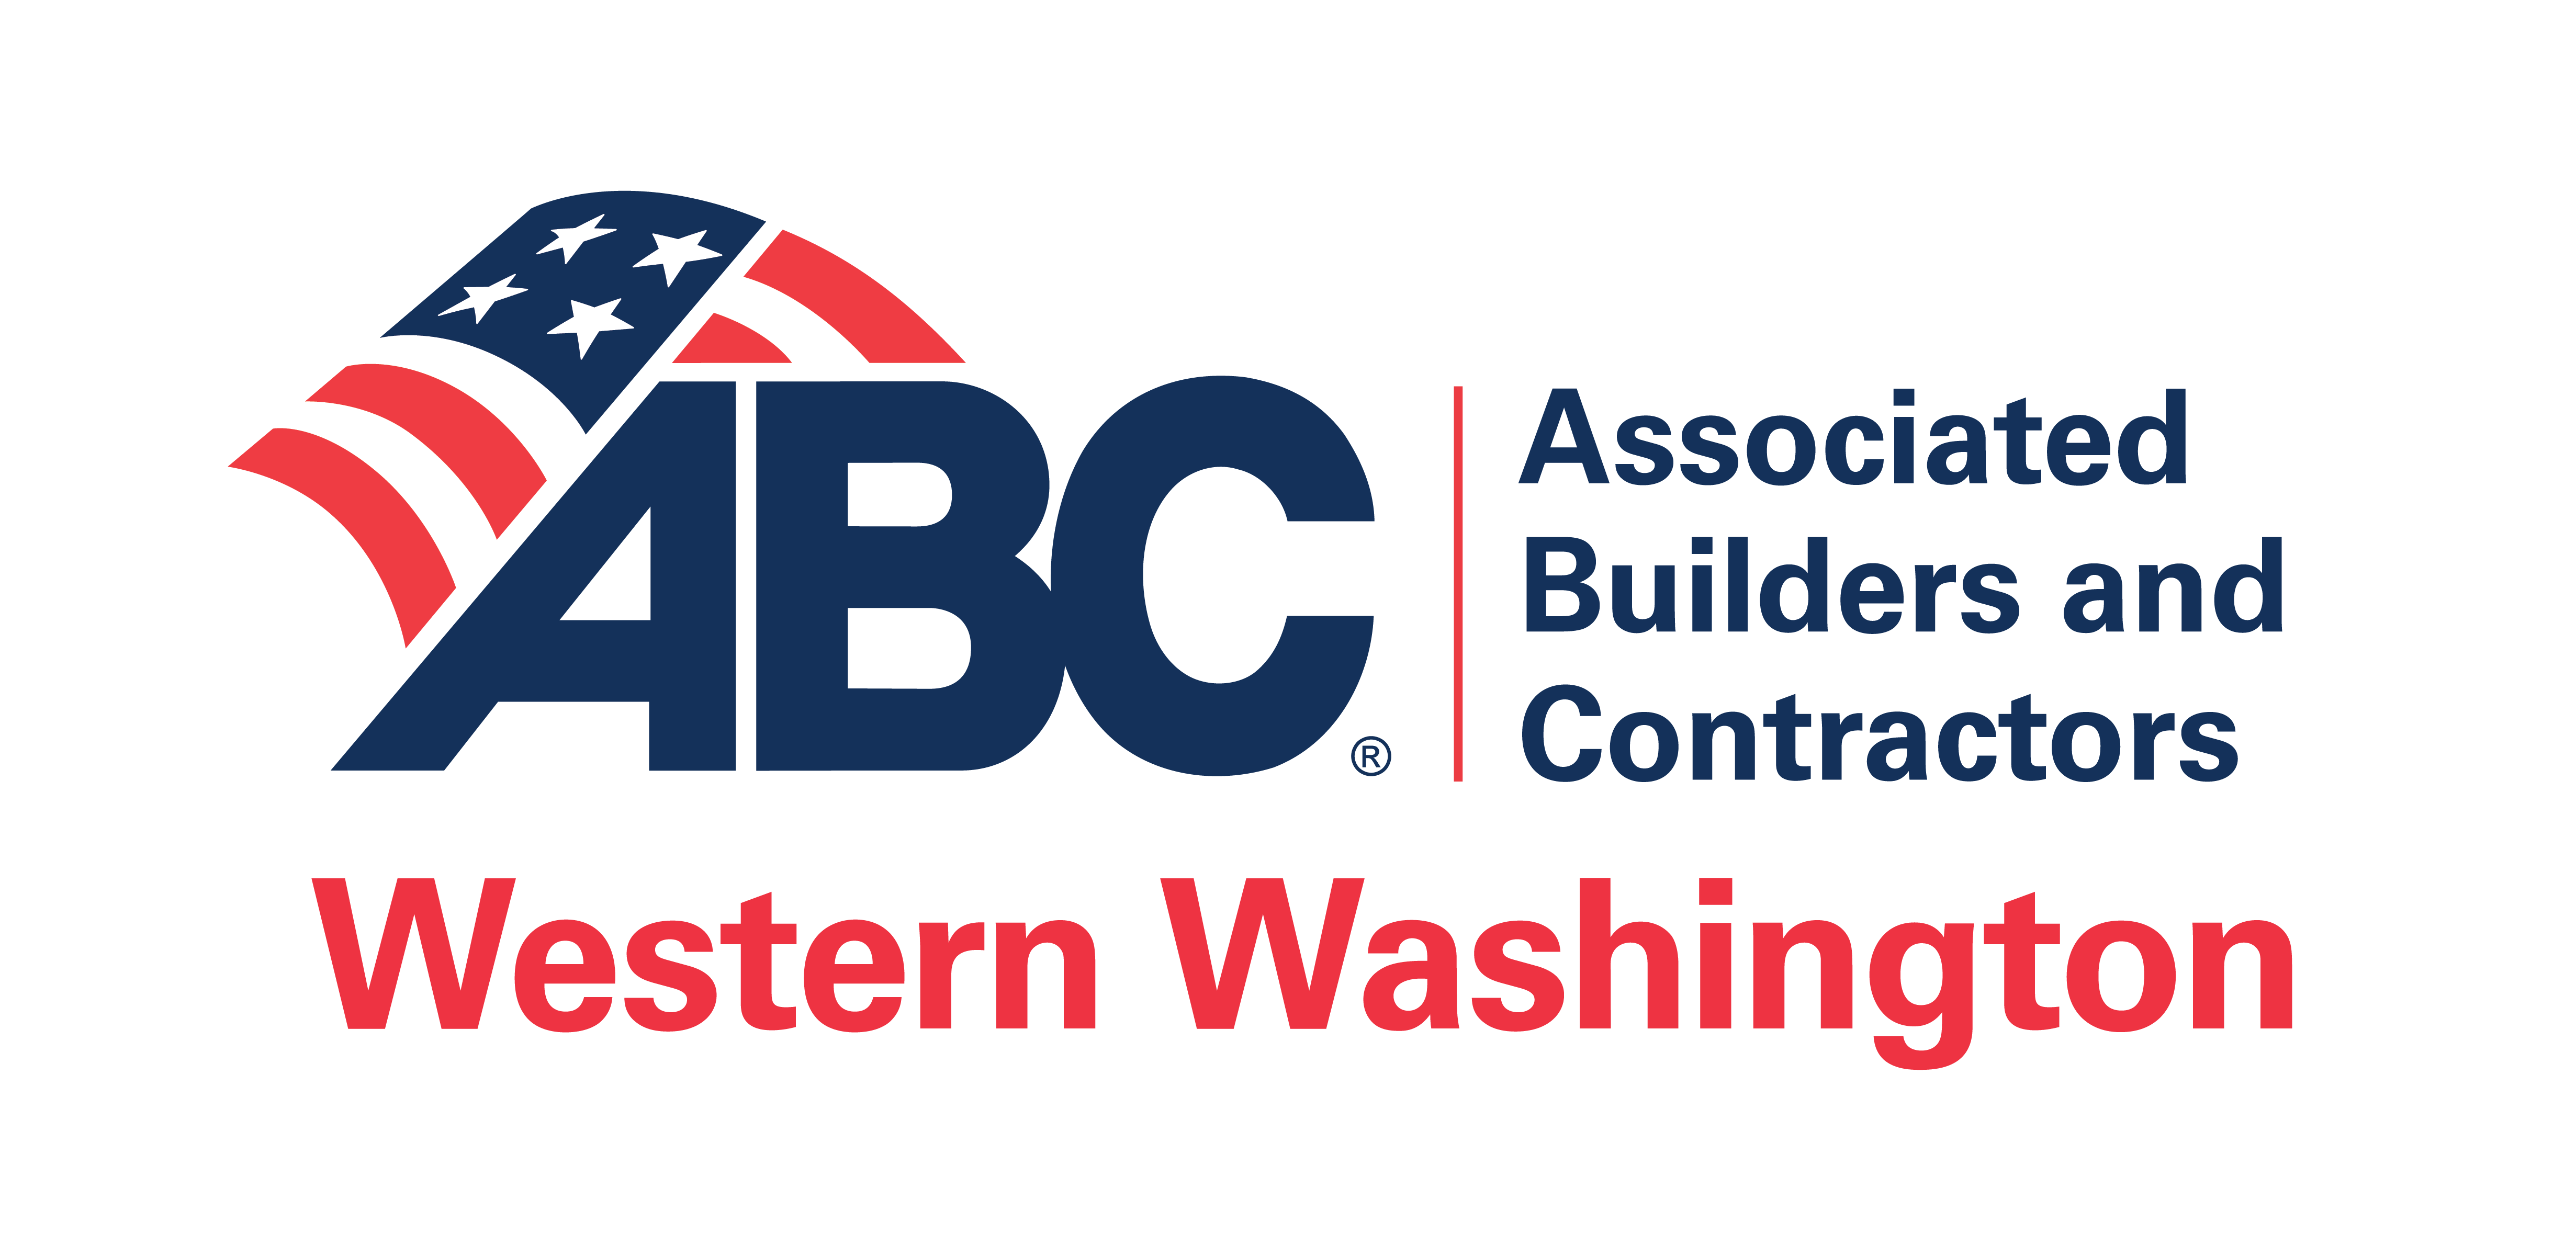 Associated Builders and Contractors Western Washington